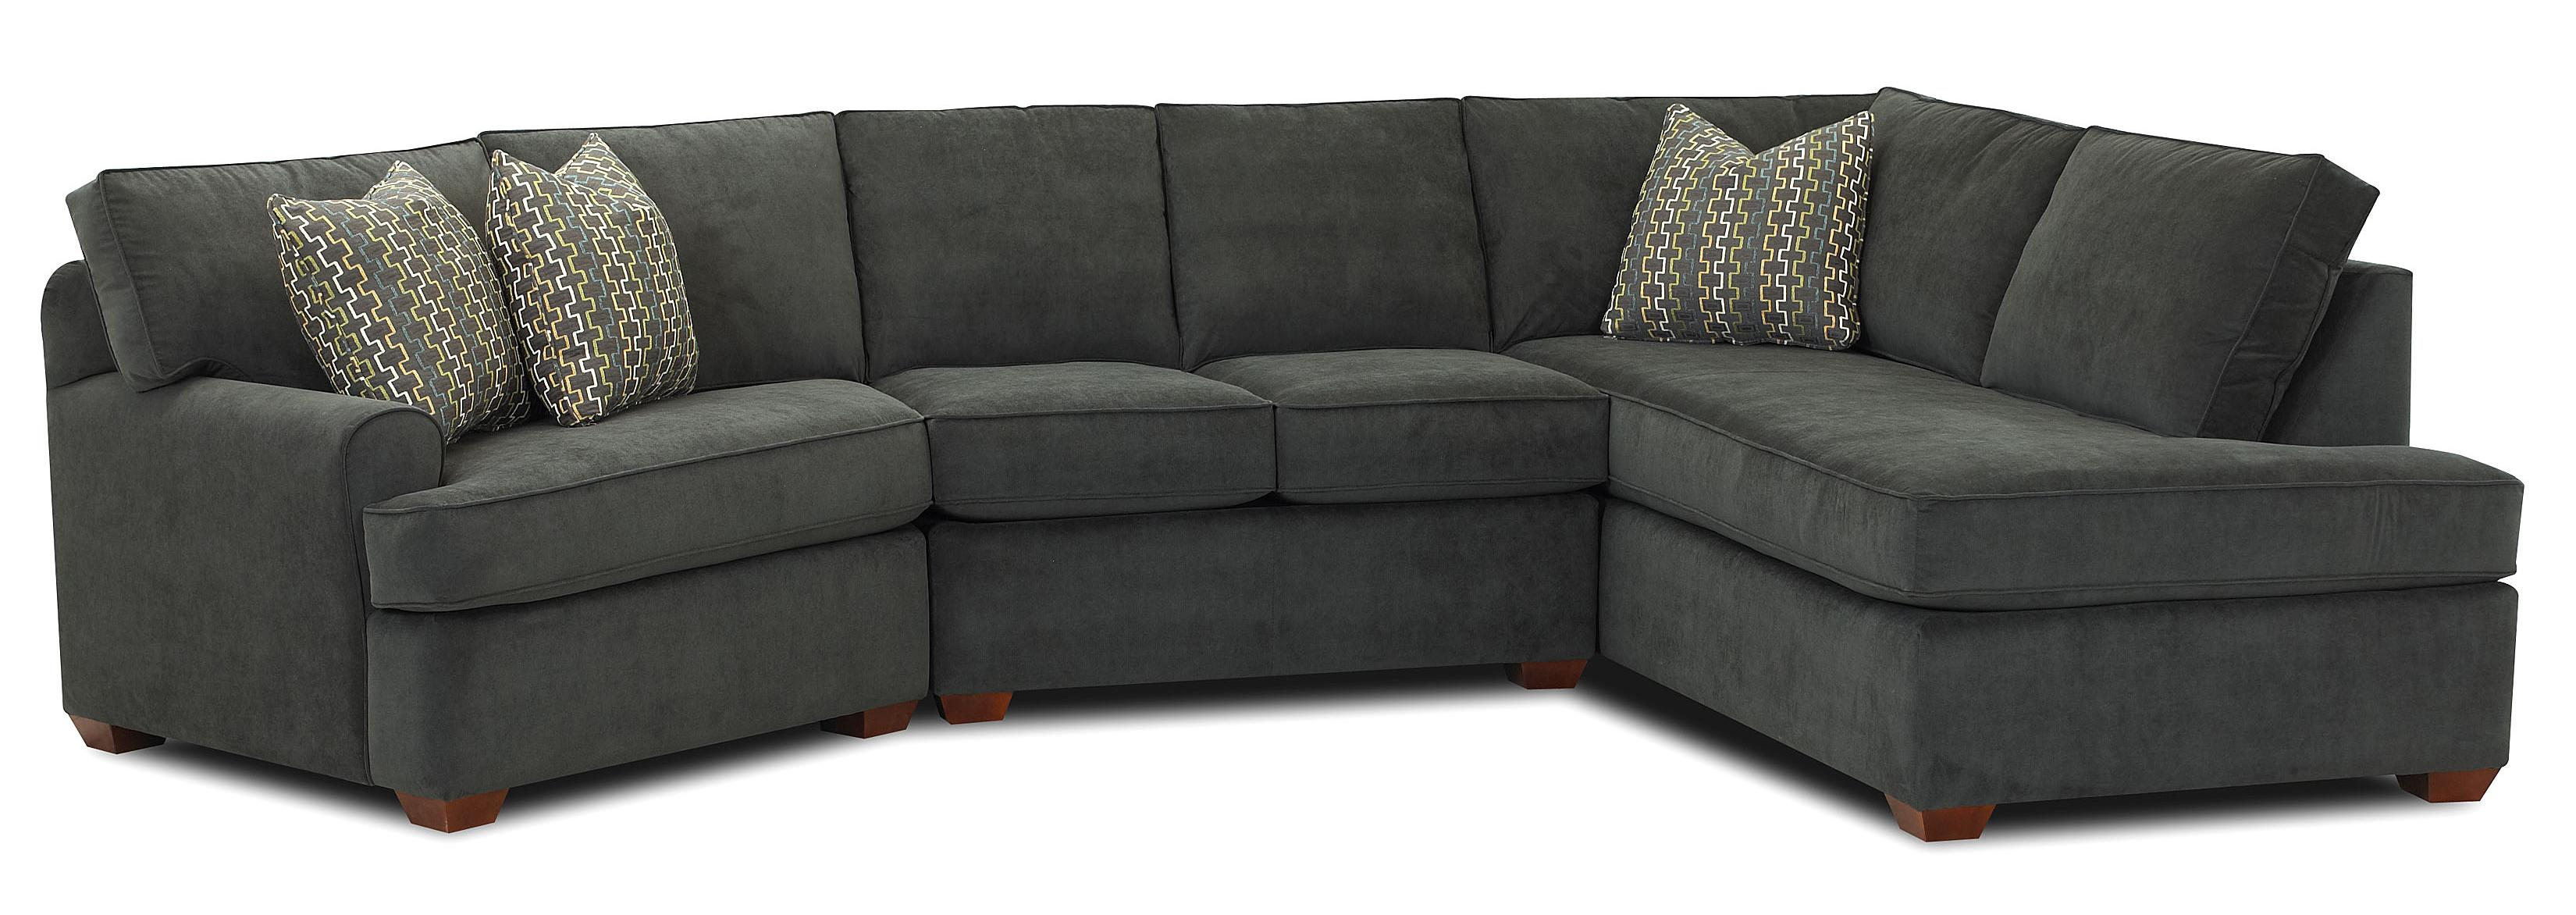 sofa w chaise white t cushion slipcover klaussner hybrid sectional with right facing dunk